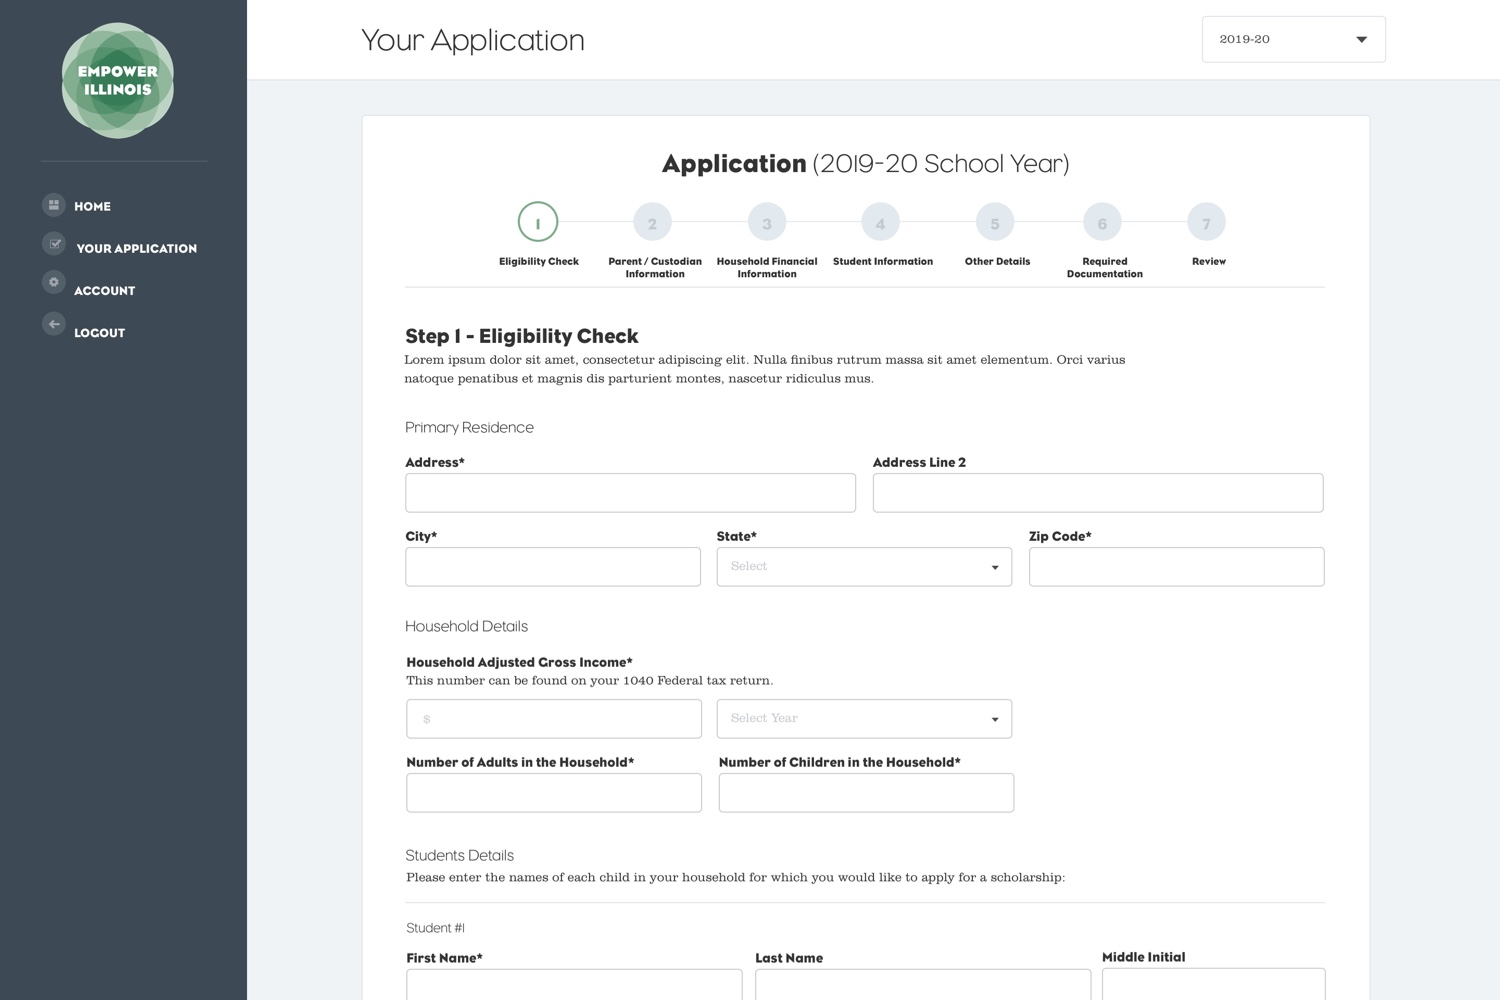 Empower Illinois - Application